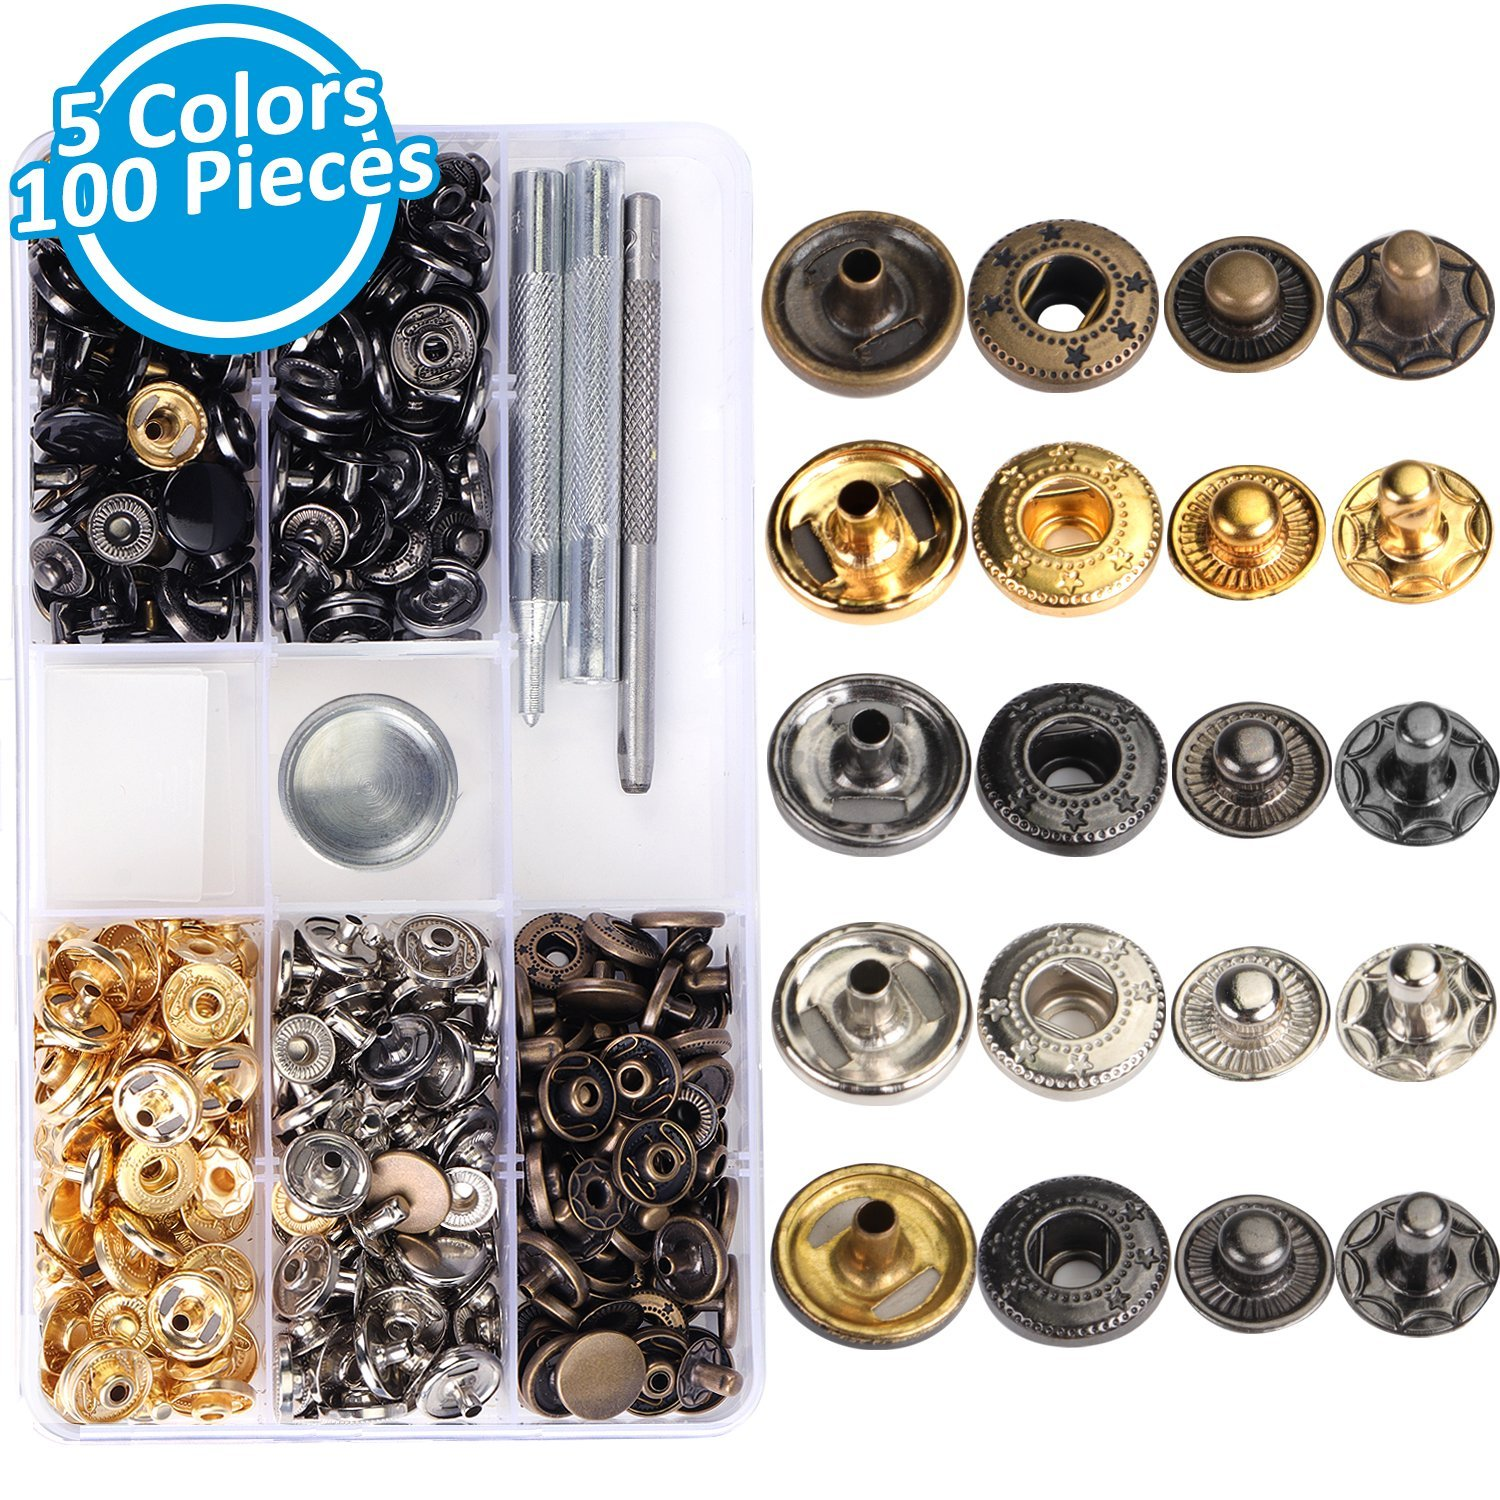 100 Sets Snap Fasteners Kit, Snap Buttons Press Studs with 4 Pieces Fixing Tools for Lether Cloth Jackets, 5 Assorted Colors, 12.5mm in Diameter INFELING